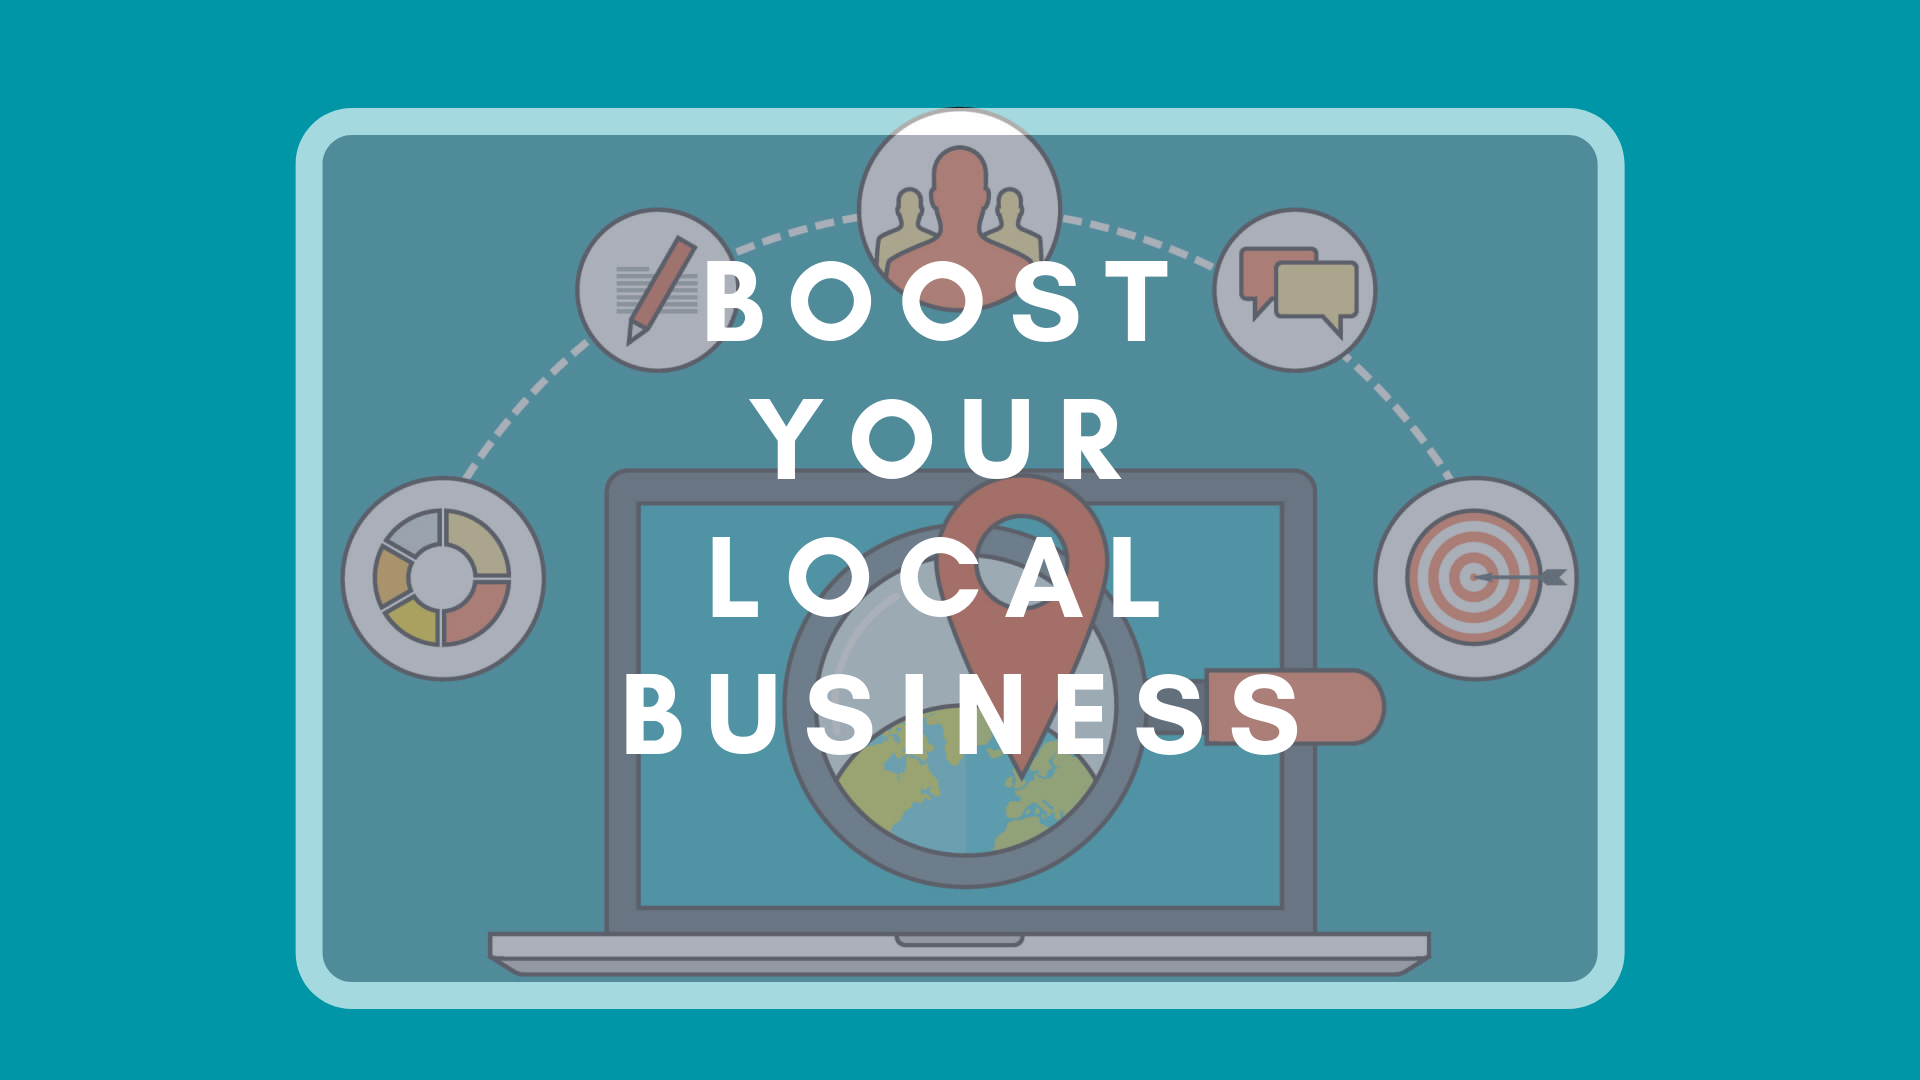 30 Best Google Local SEO Citation Boost Your Local Search